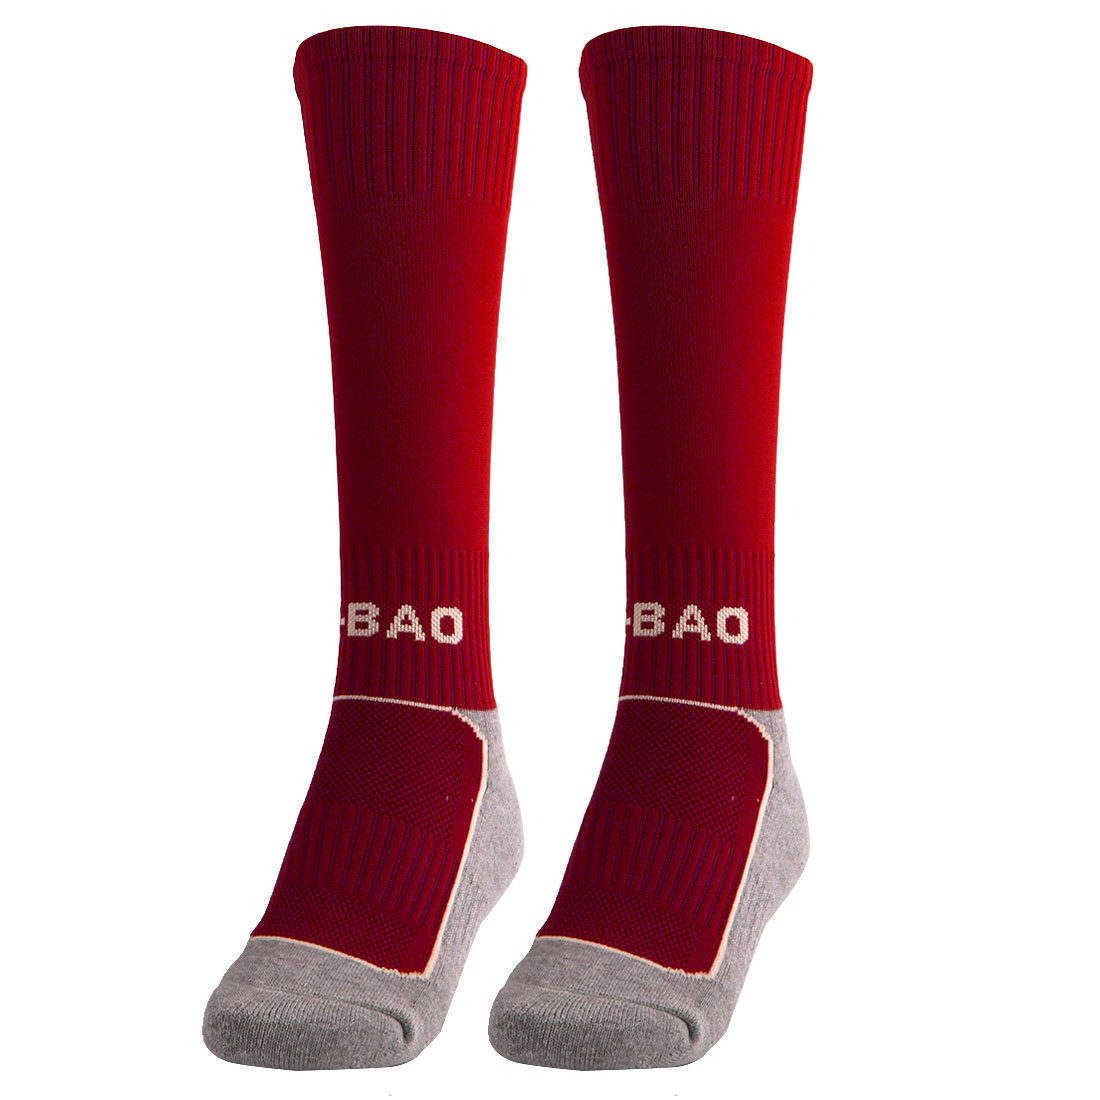 R-BAO Authorized Cotton Blends Outdoor Soccer Football Long Socks Red Pair